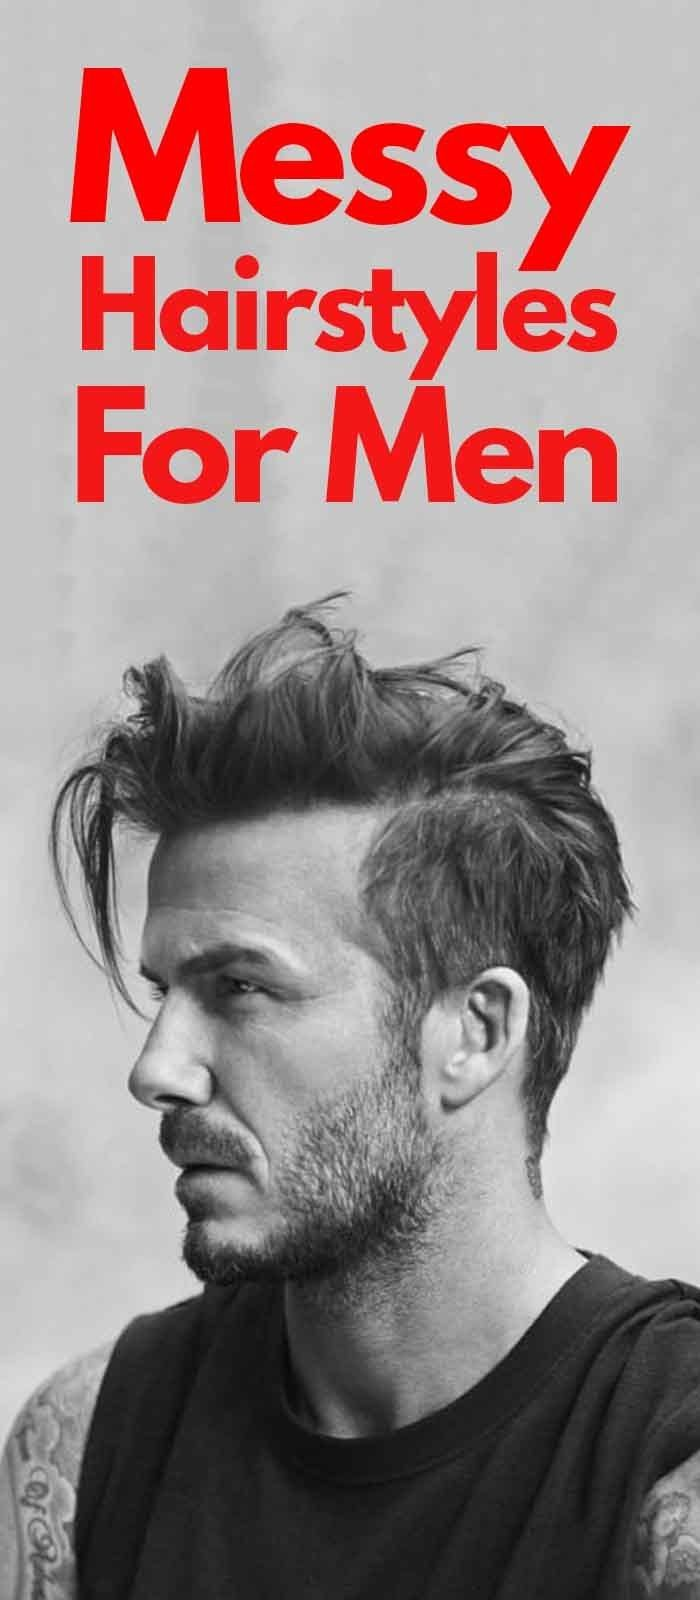 30 Messy Hairstyles For Men That Are Stylish Too in 2019   – peinados